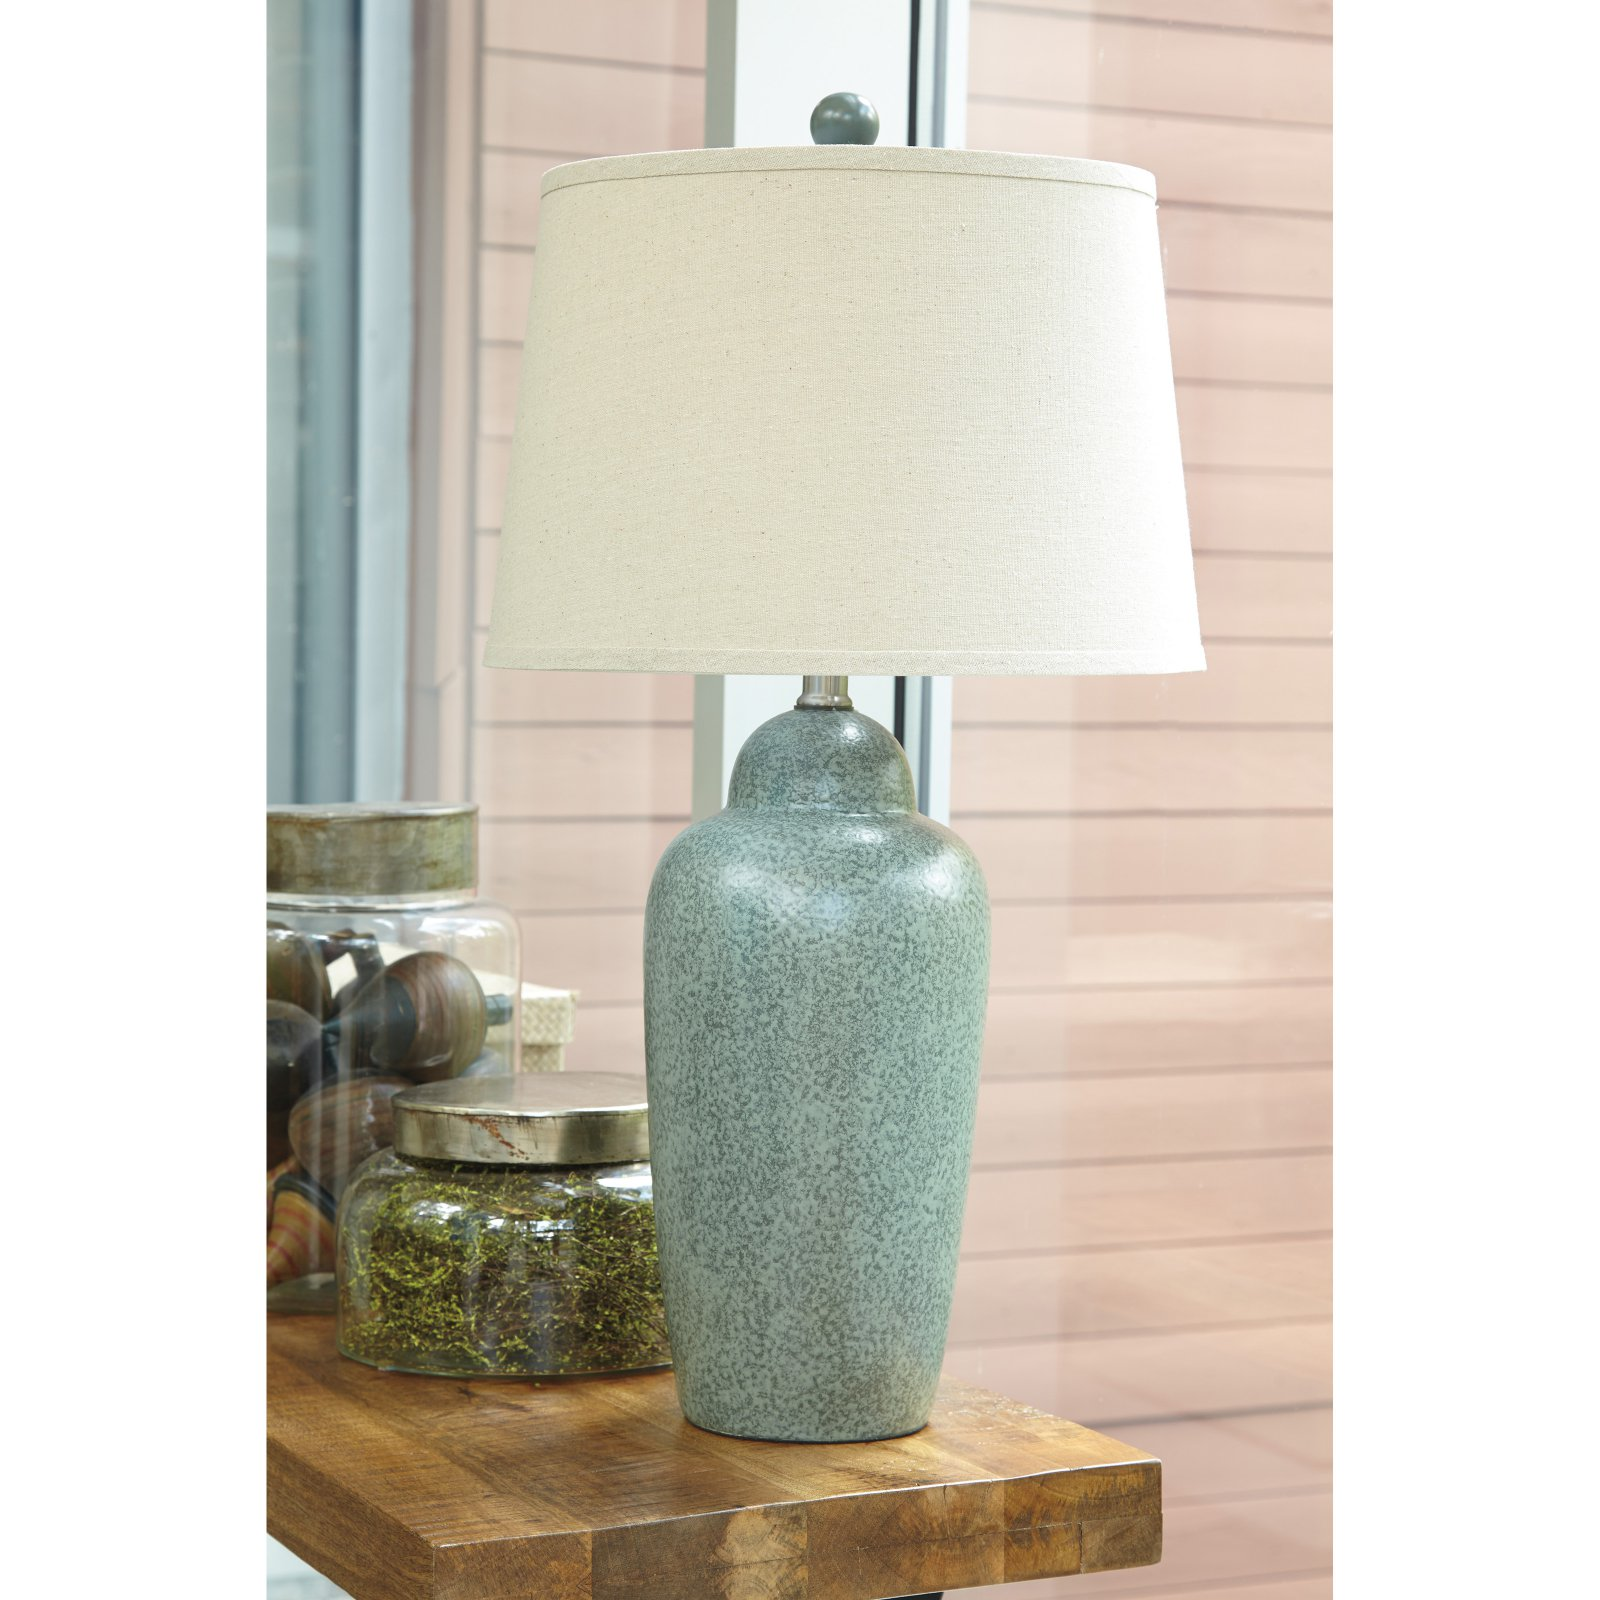 Signature Design by Ashley Saher L100254 Table Lamp by Ashley Furniture